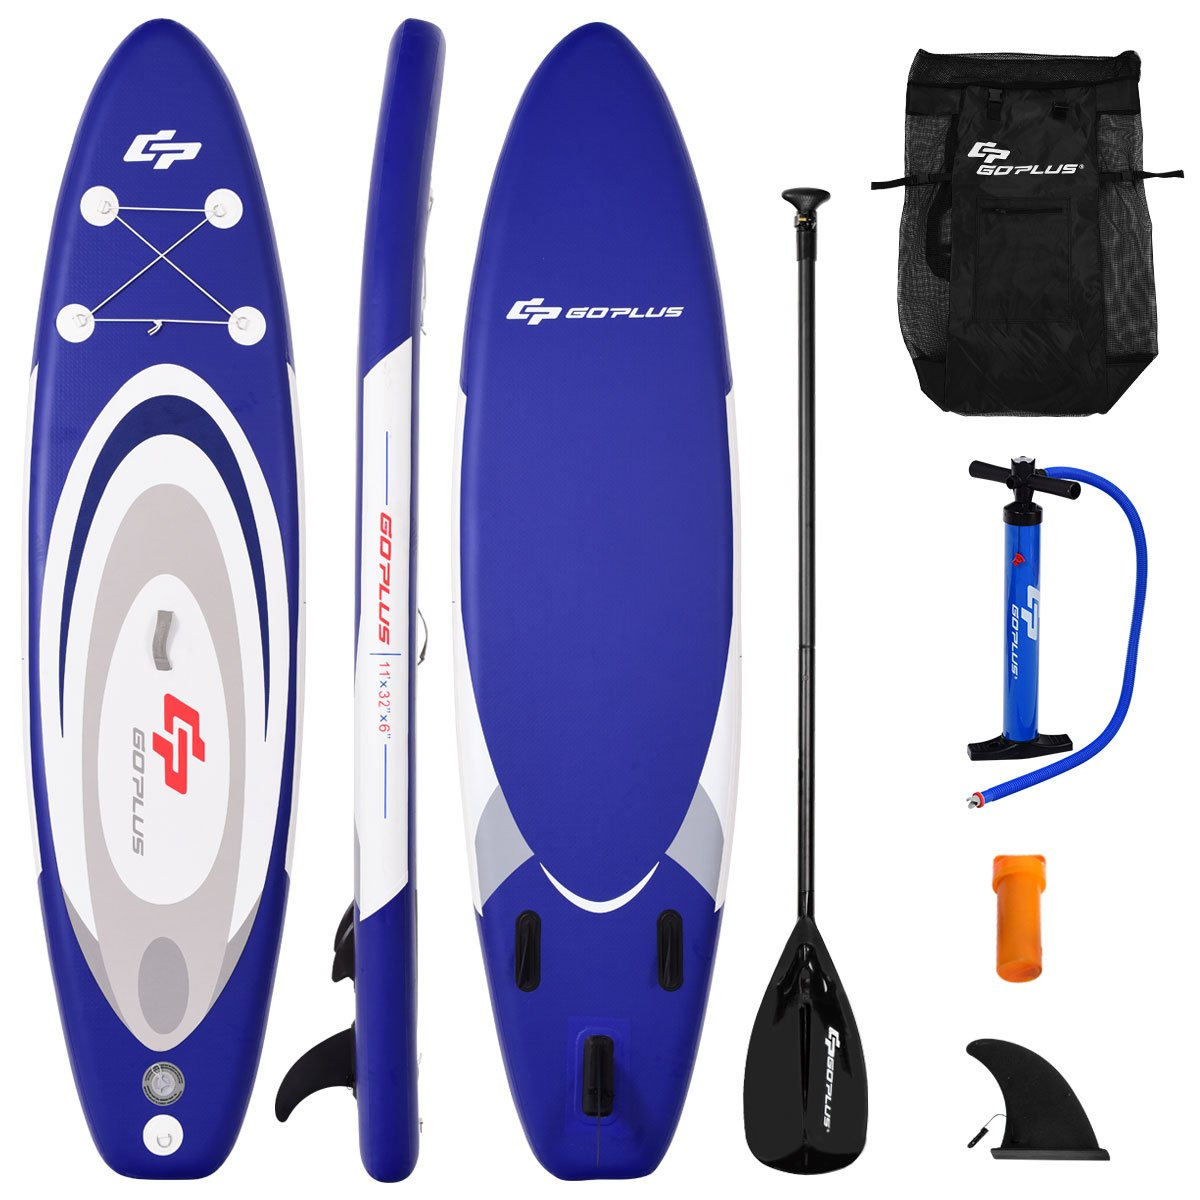 Goplus Inflatable Stand up Paddle Board Surfboard SUP Board with Adjustable Paddle Carry Bag Manual Pump Repair Kit Removable Fin for All Skill Levels, 6'' Thick (Navy, 11 FT)